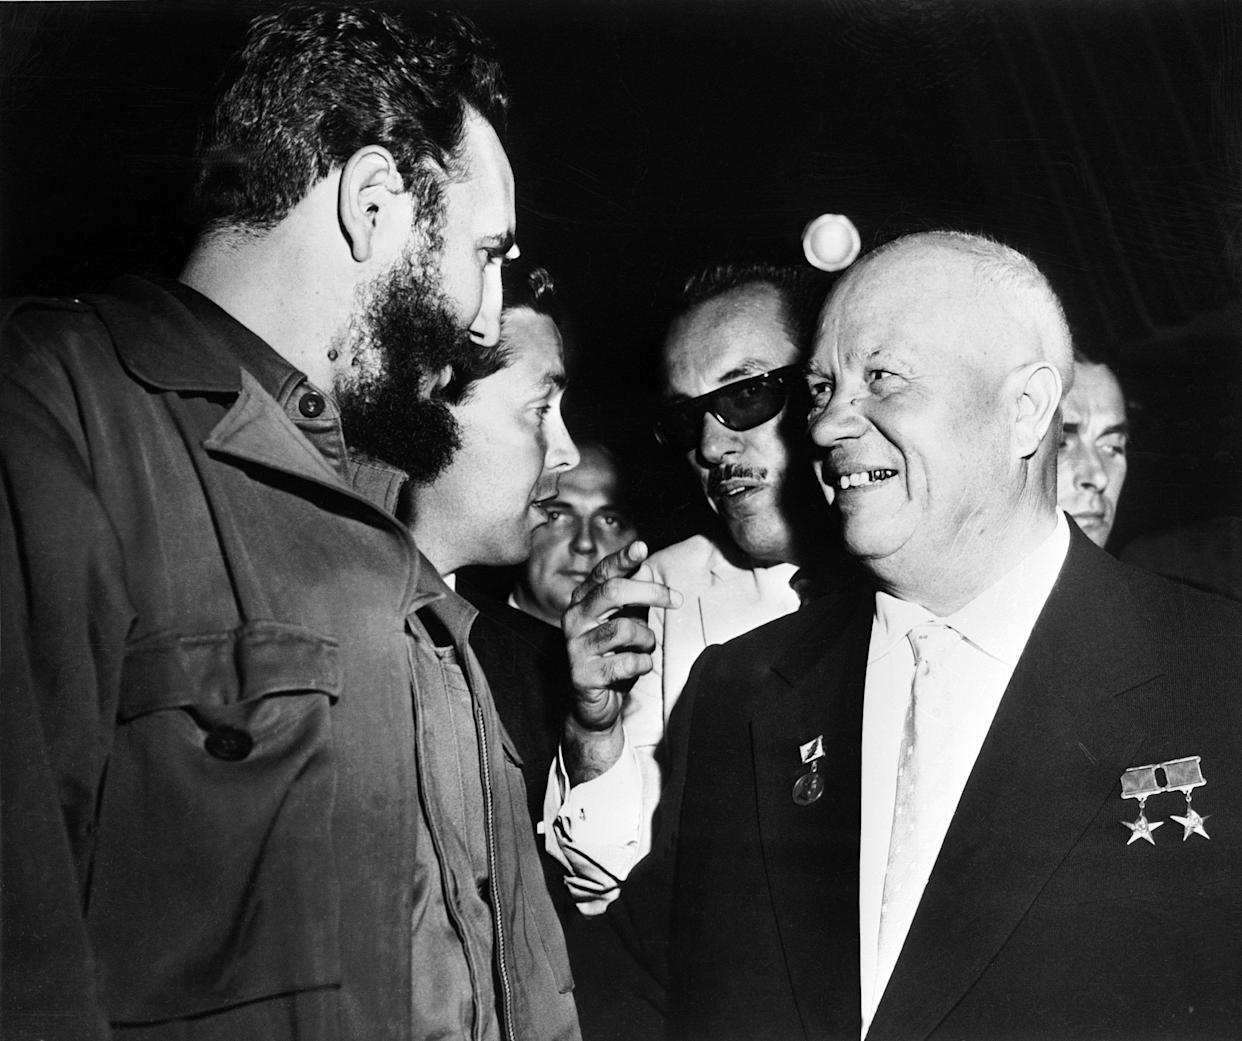 Premier Nikita Khrushchev of the Soviet Union in Havana in 1960, speaking through an interpreter with the Cuban revolutionary leader Fidel Castro. (Photo: Keystone-France/Gamma-Keystone via Getty Images)